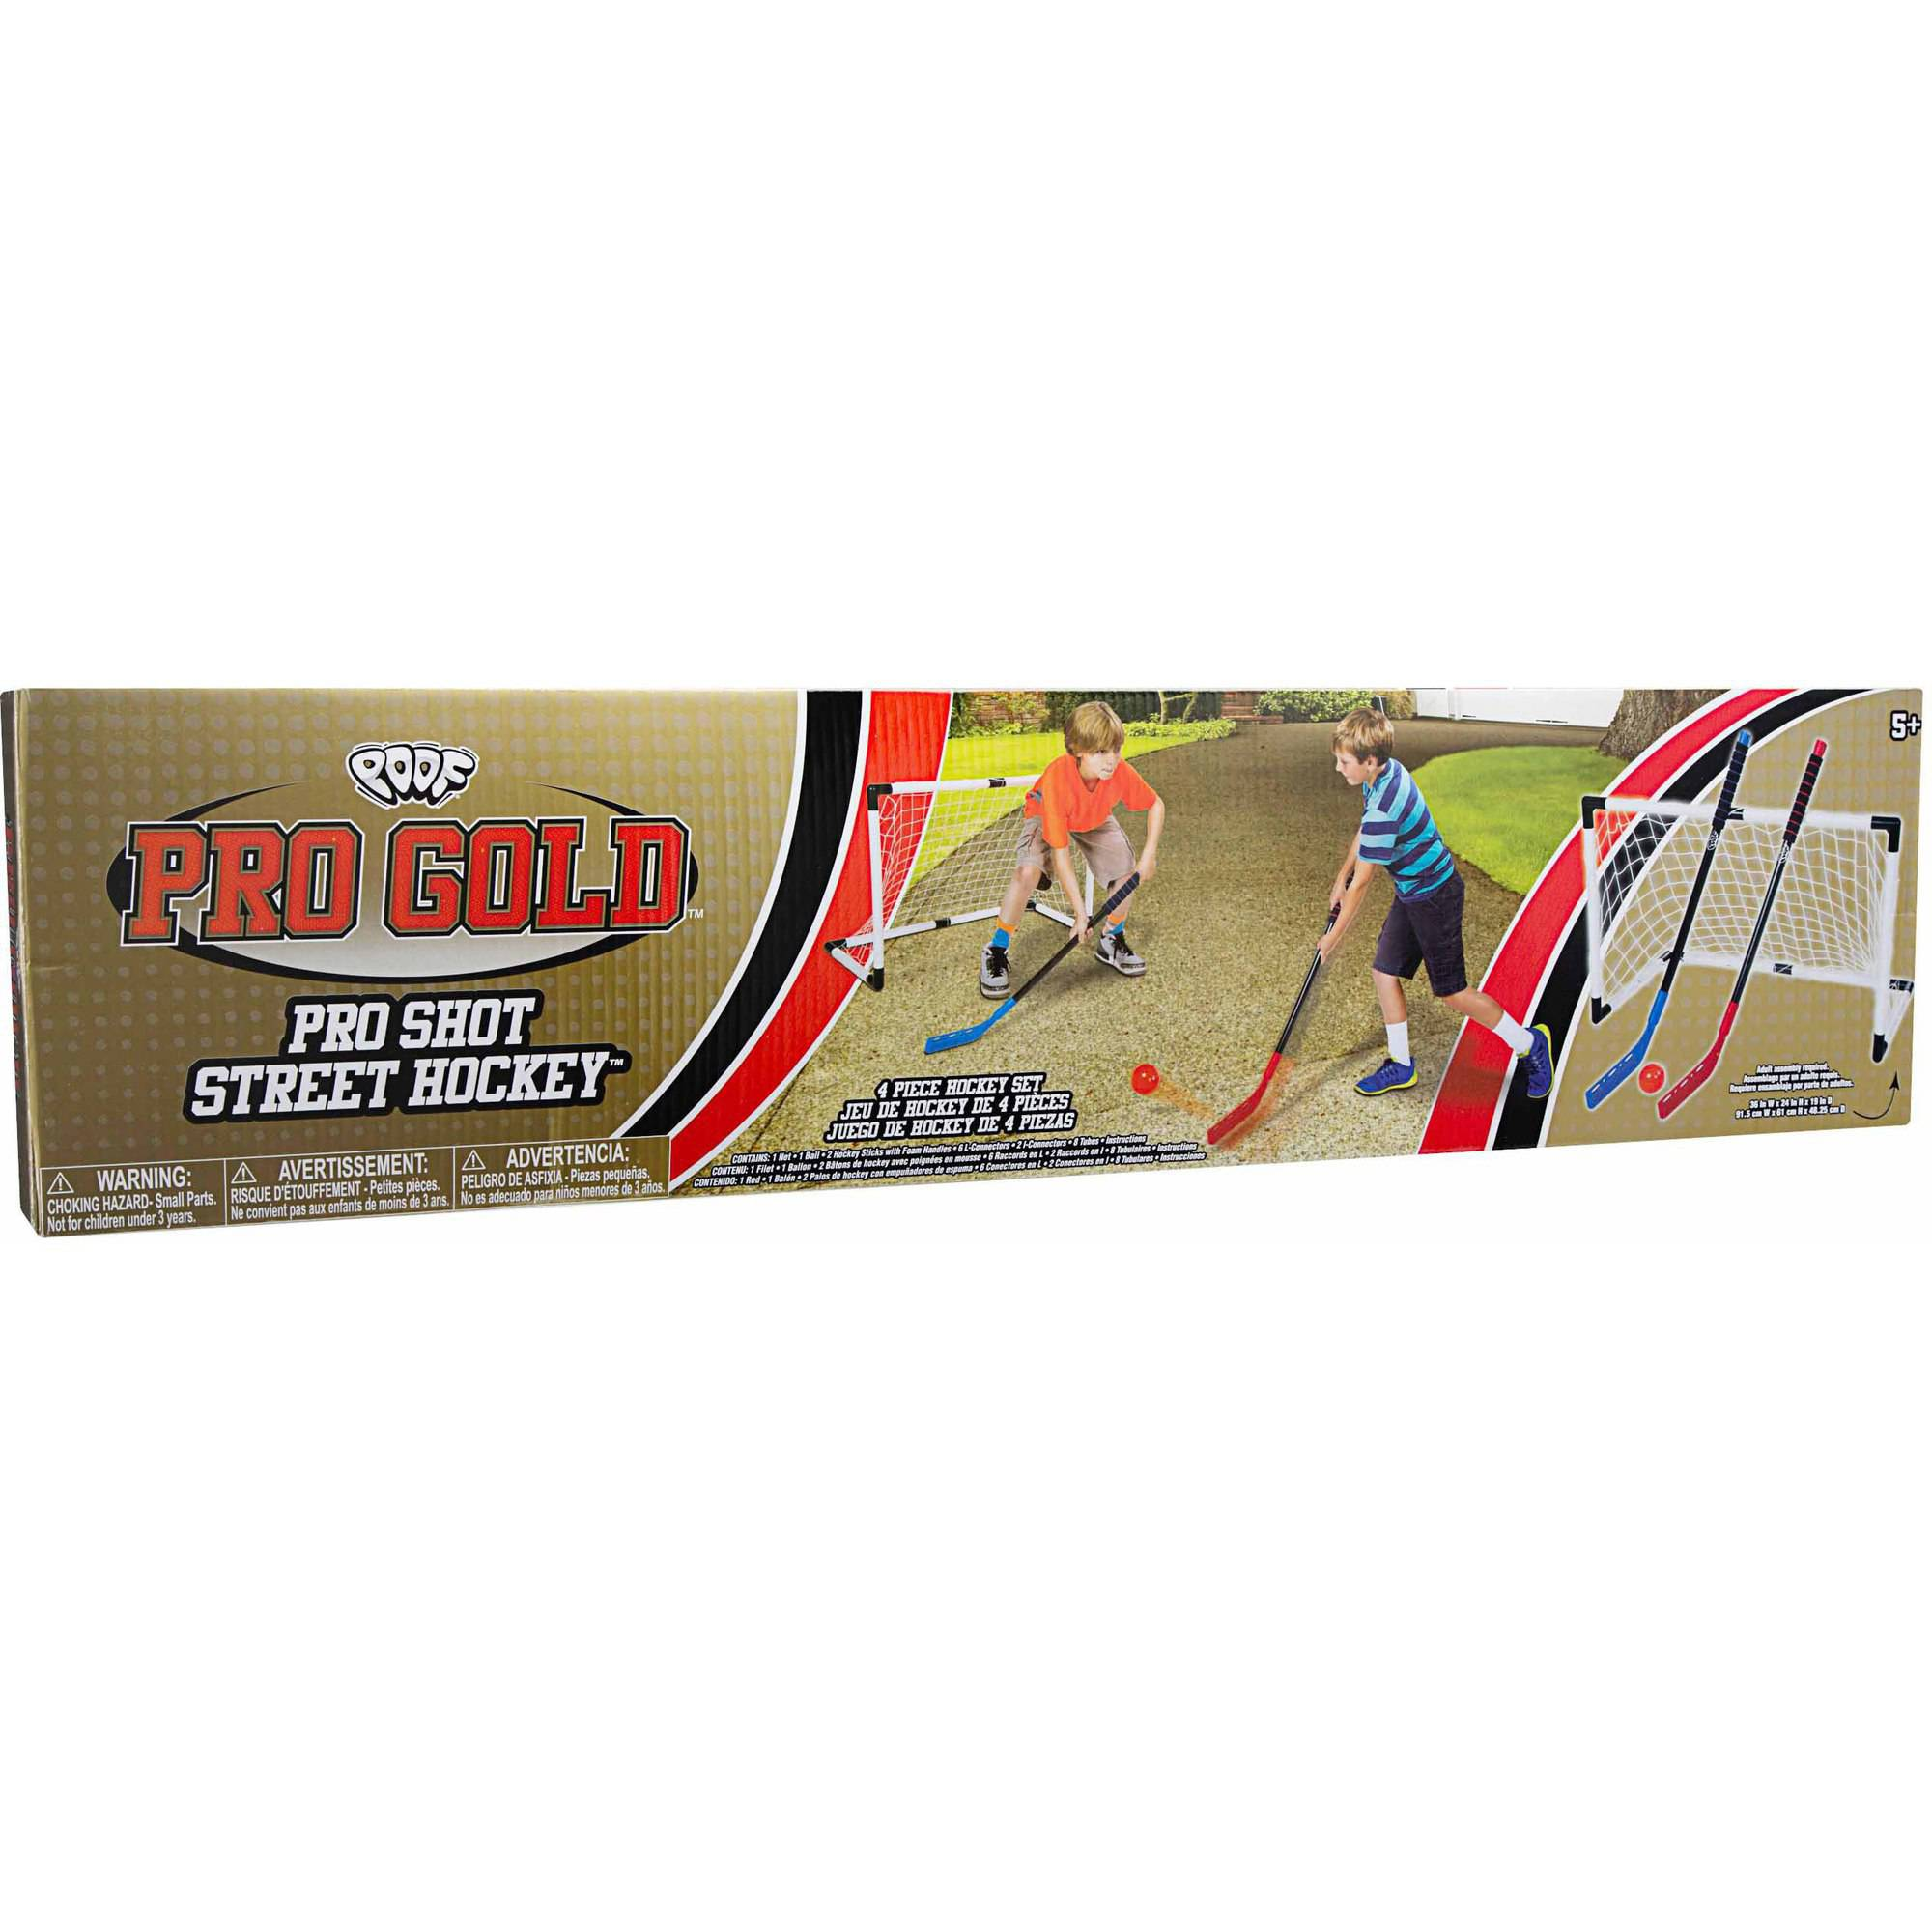 POOF Pro Gold Pro Shot Street Hockey by Alex Brands